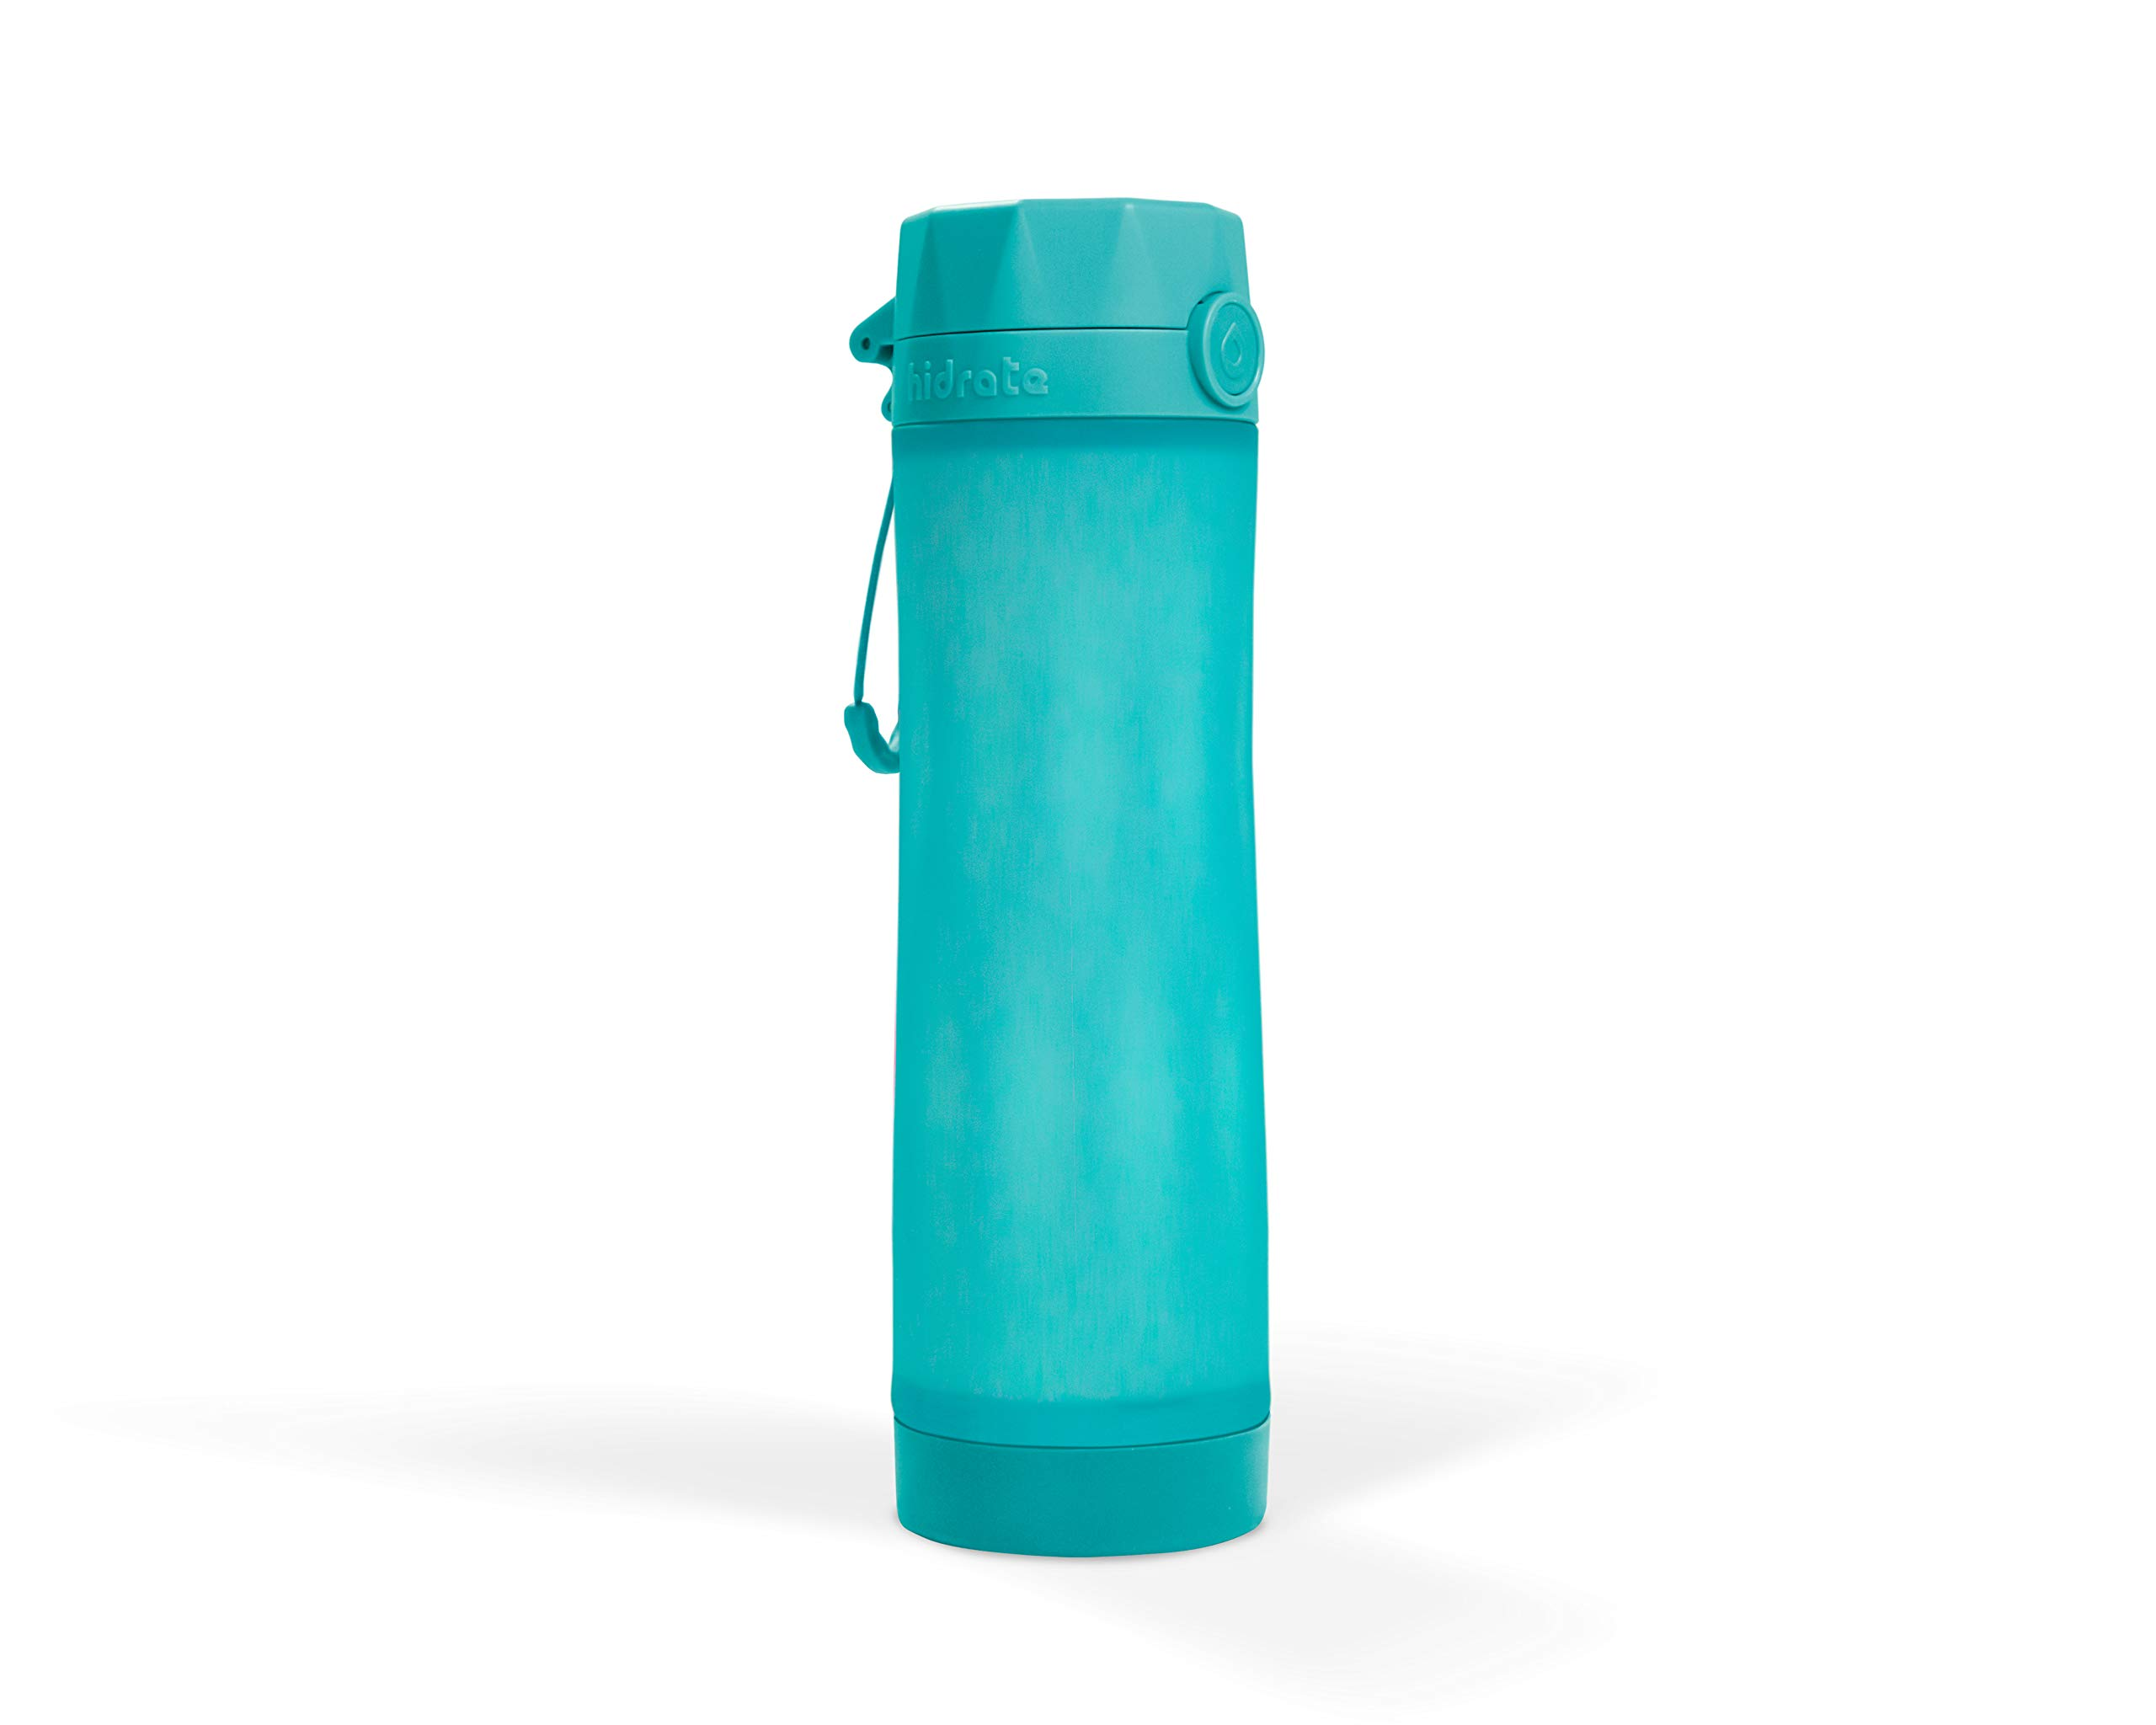 Hidrate Spark 3 Smart Water Bottle - Tracks Water Intake & Glows to Remind You to Stay Hydrated (Scuba) by Hidrate Spark (Image #5)